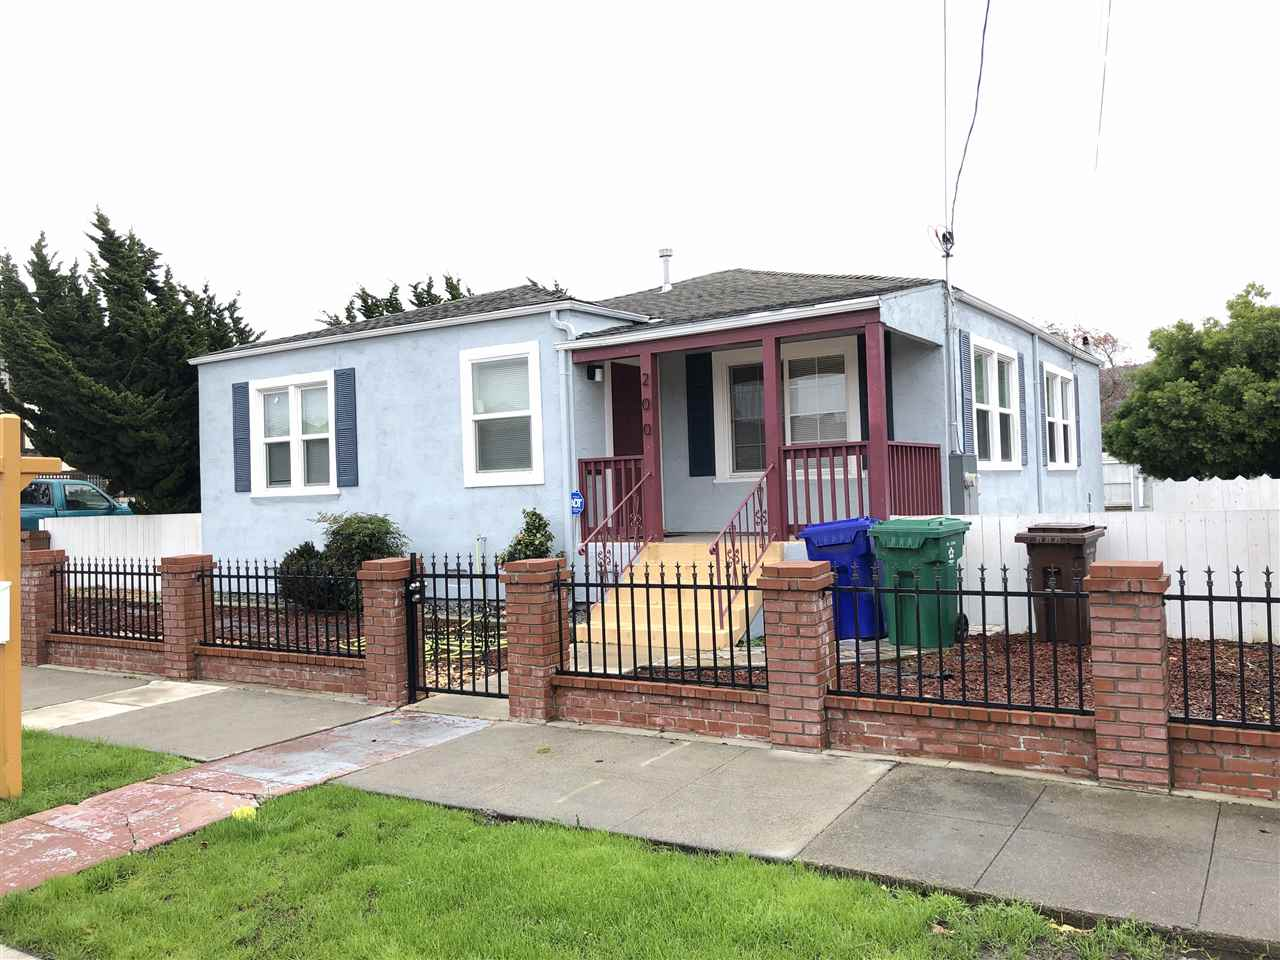 200 S 45TH STREET, RICHMOND, CA 94804